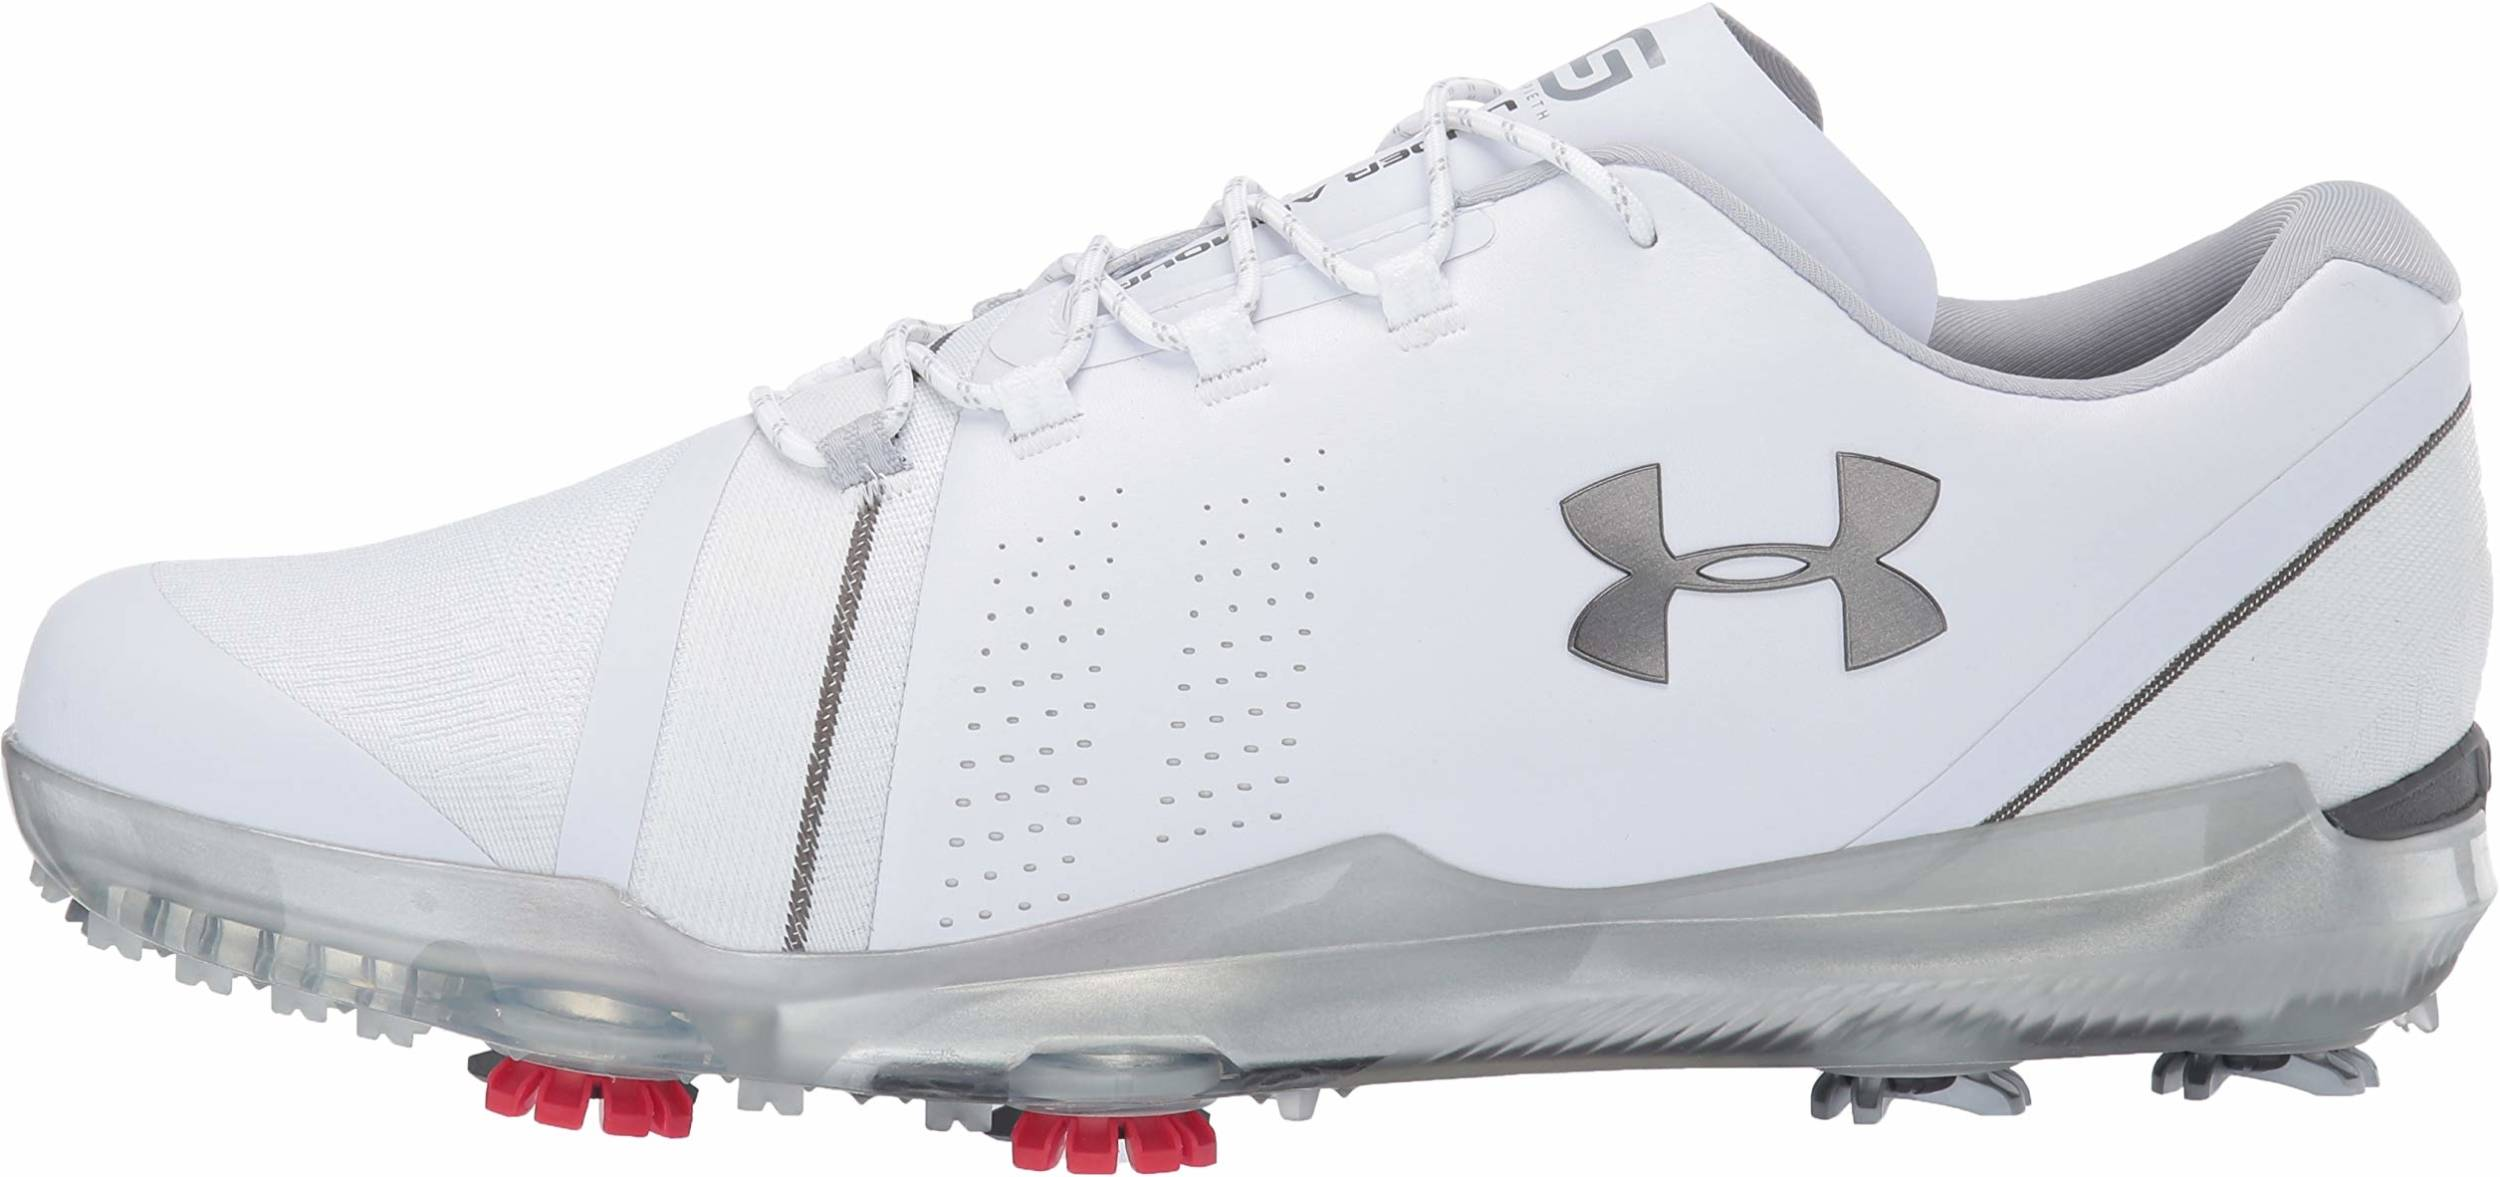 Review of Under Armour Spieth 3